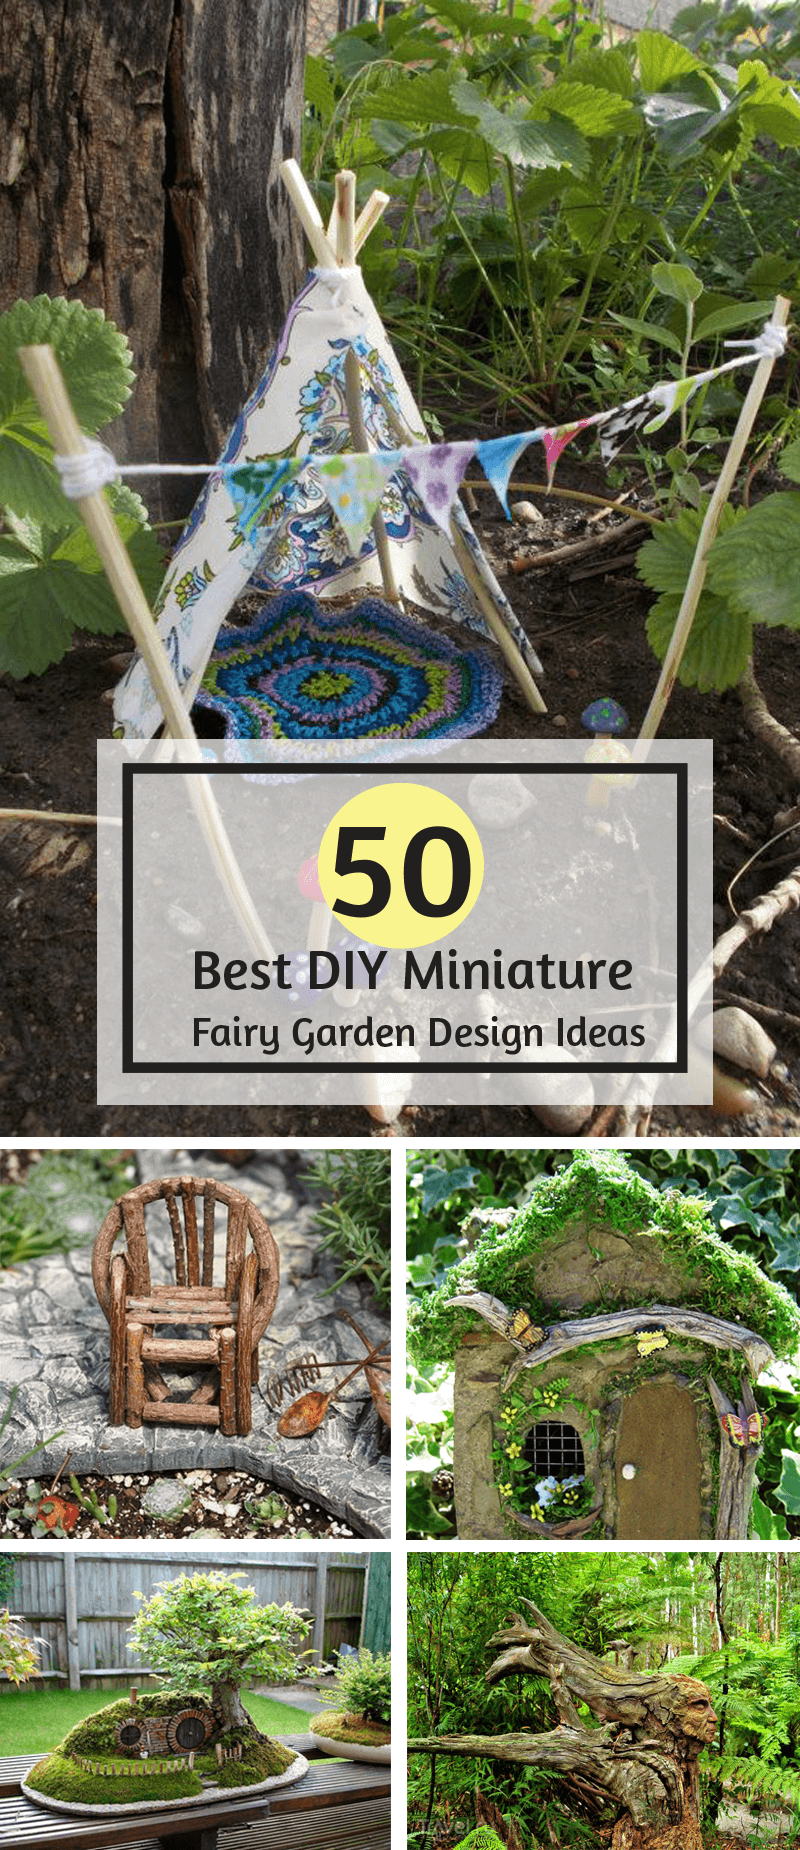 50 diy miniature fairy garden design ideas interiorsherpa for Fairy garden decorating ideas